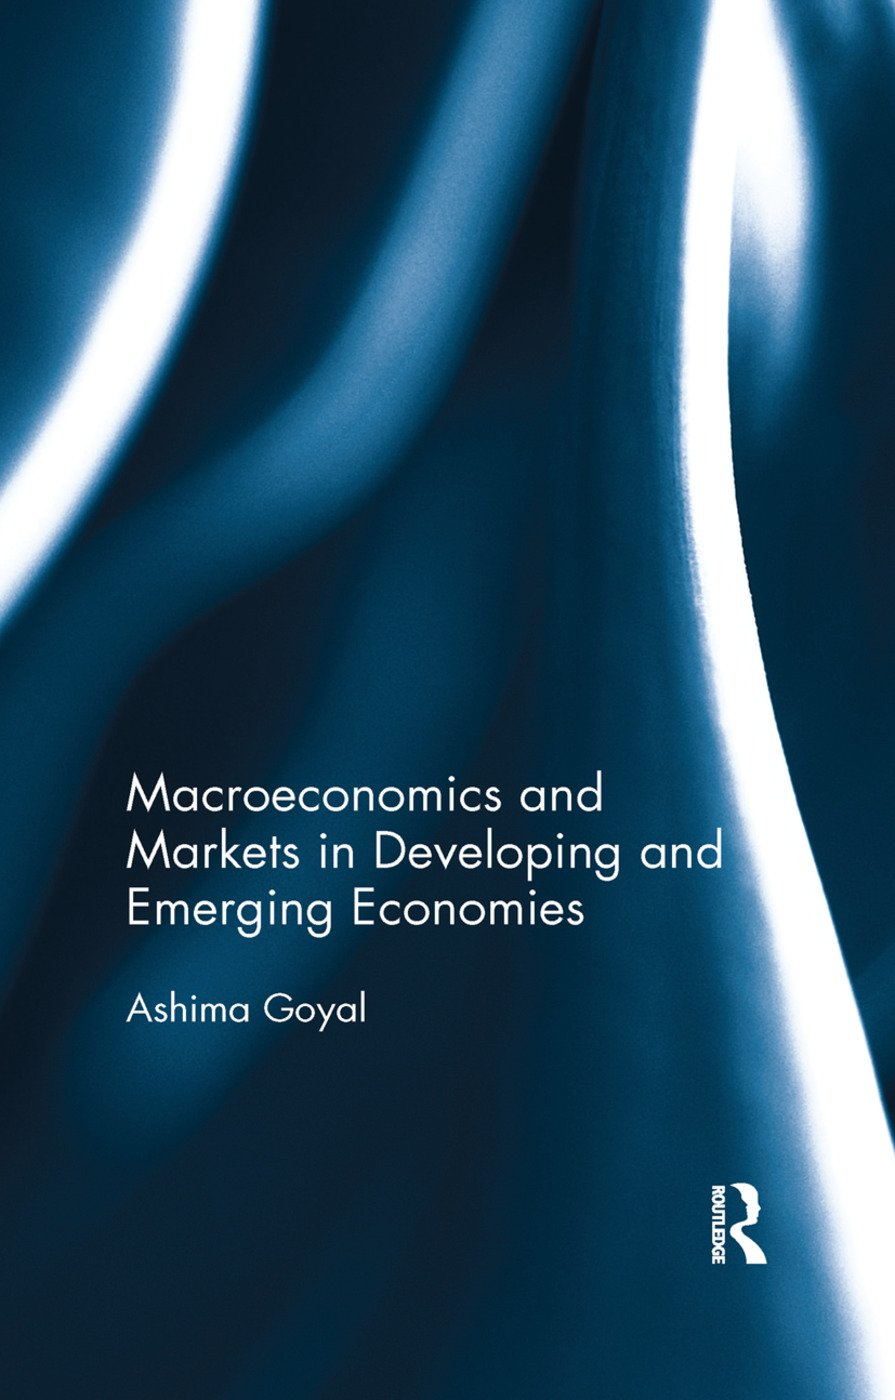 Macroeconomics and Markets in Developing and Emerging Economies book cover